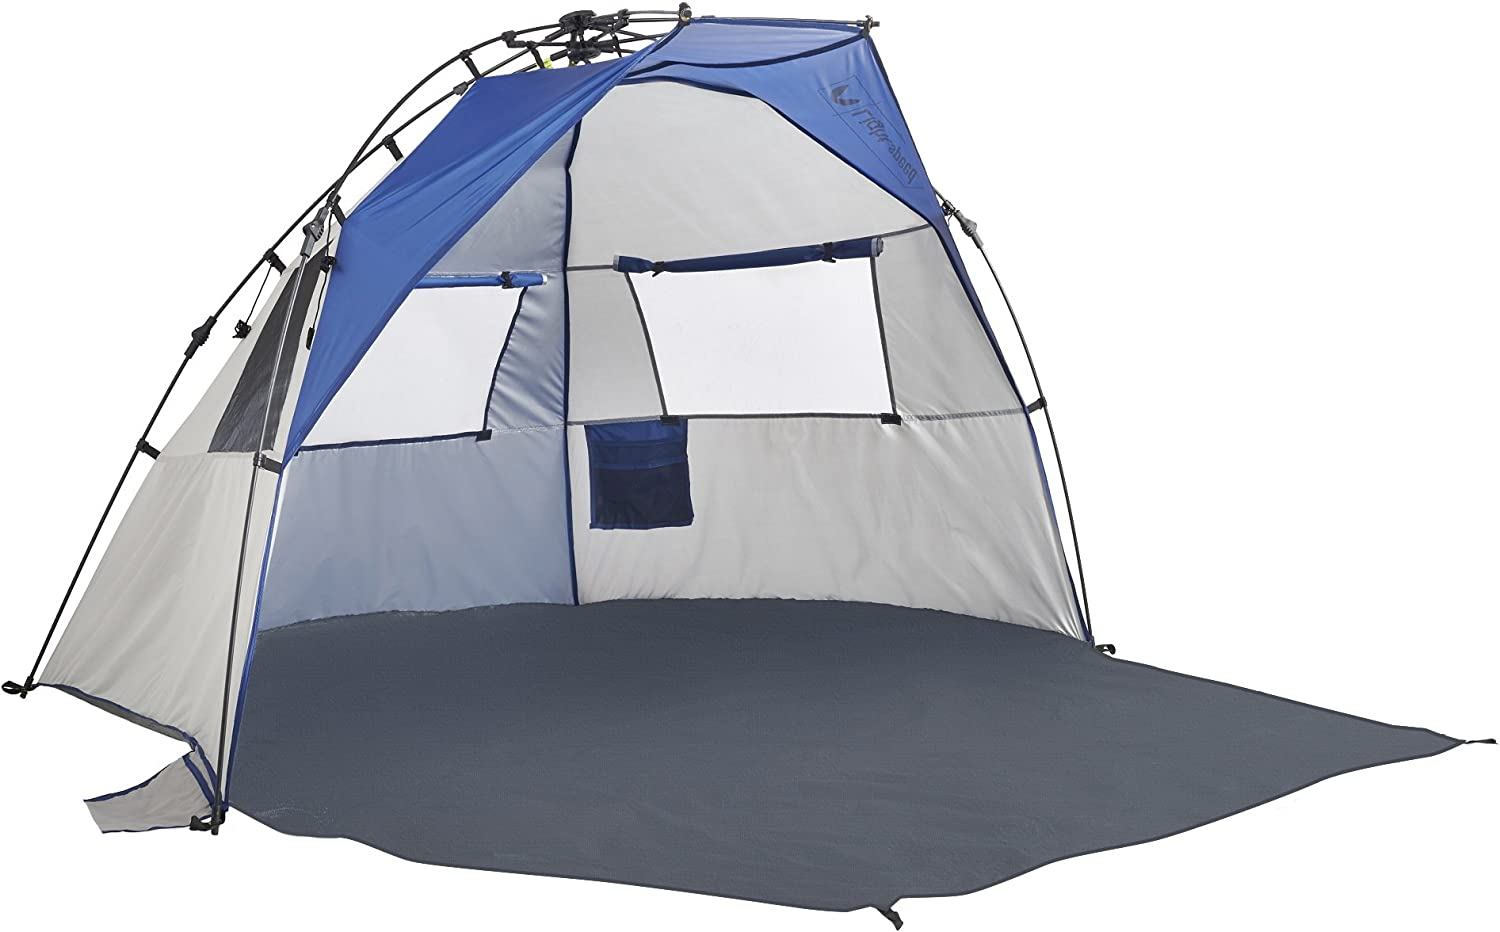 Lightspeed Outdoors Cabana Beach Tent Sun Shelter